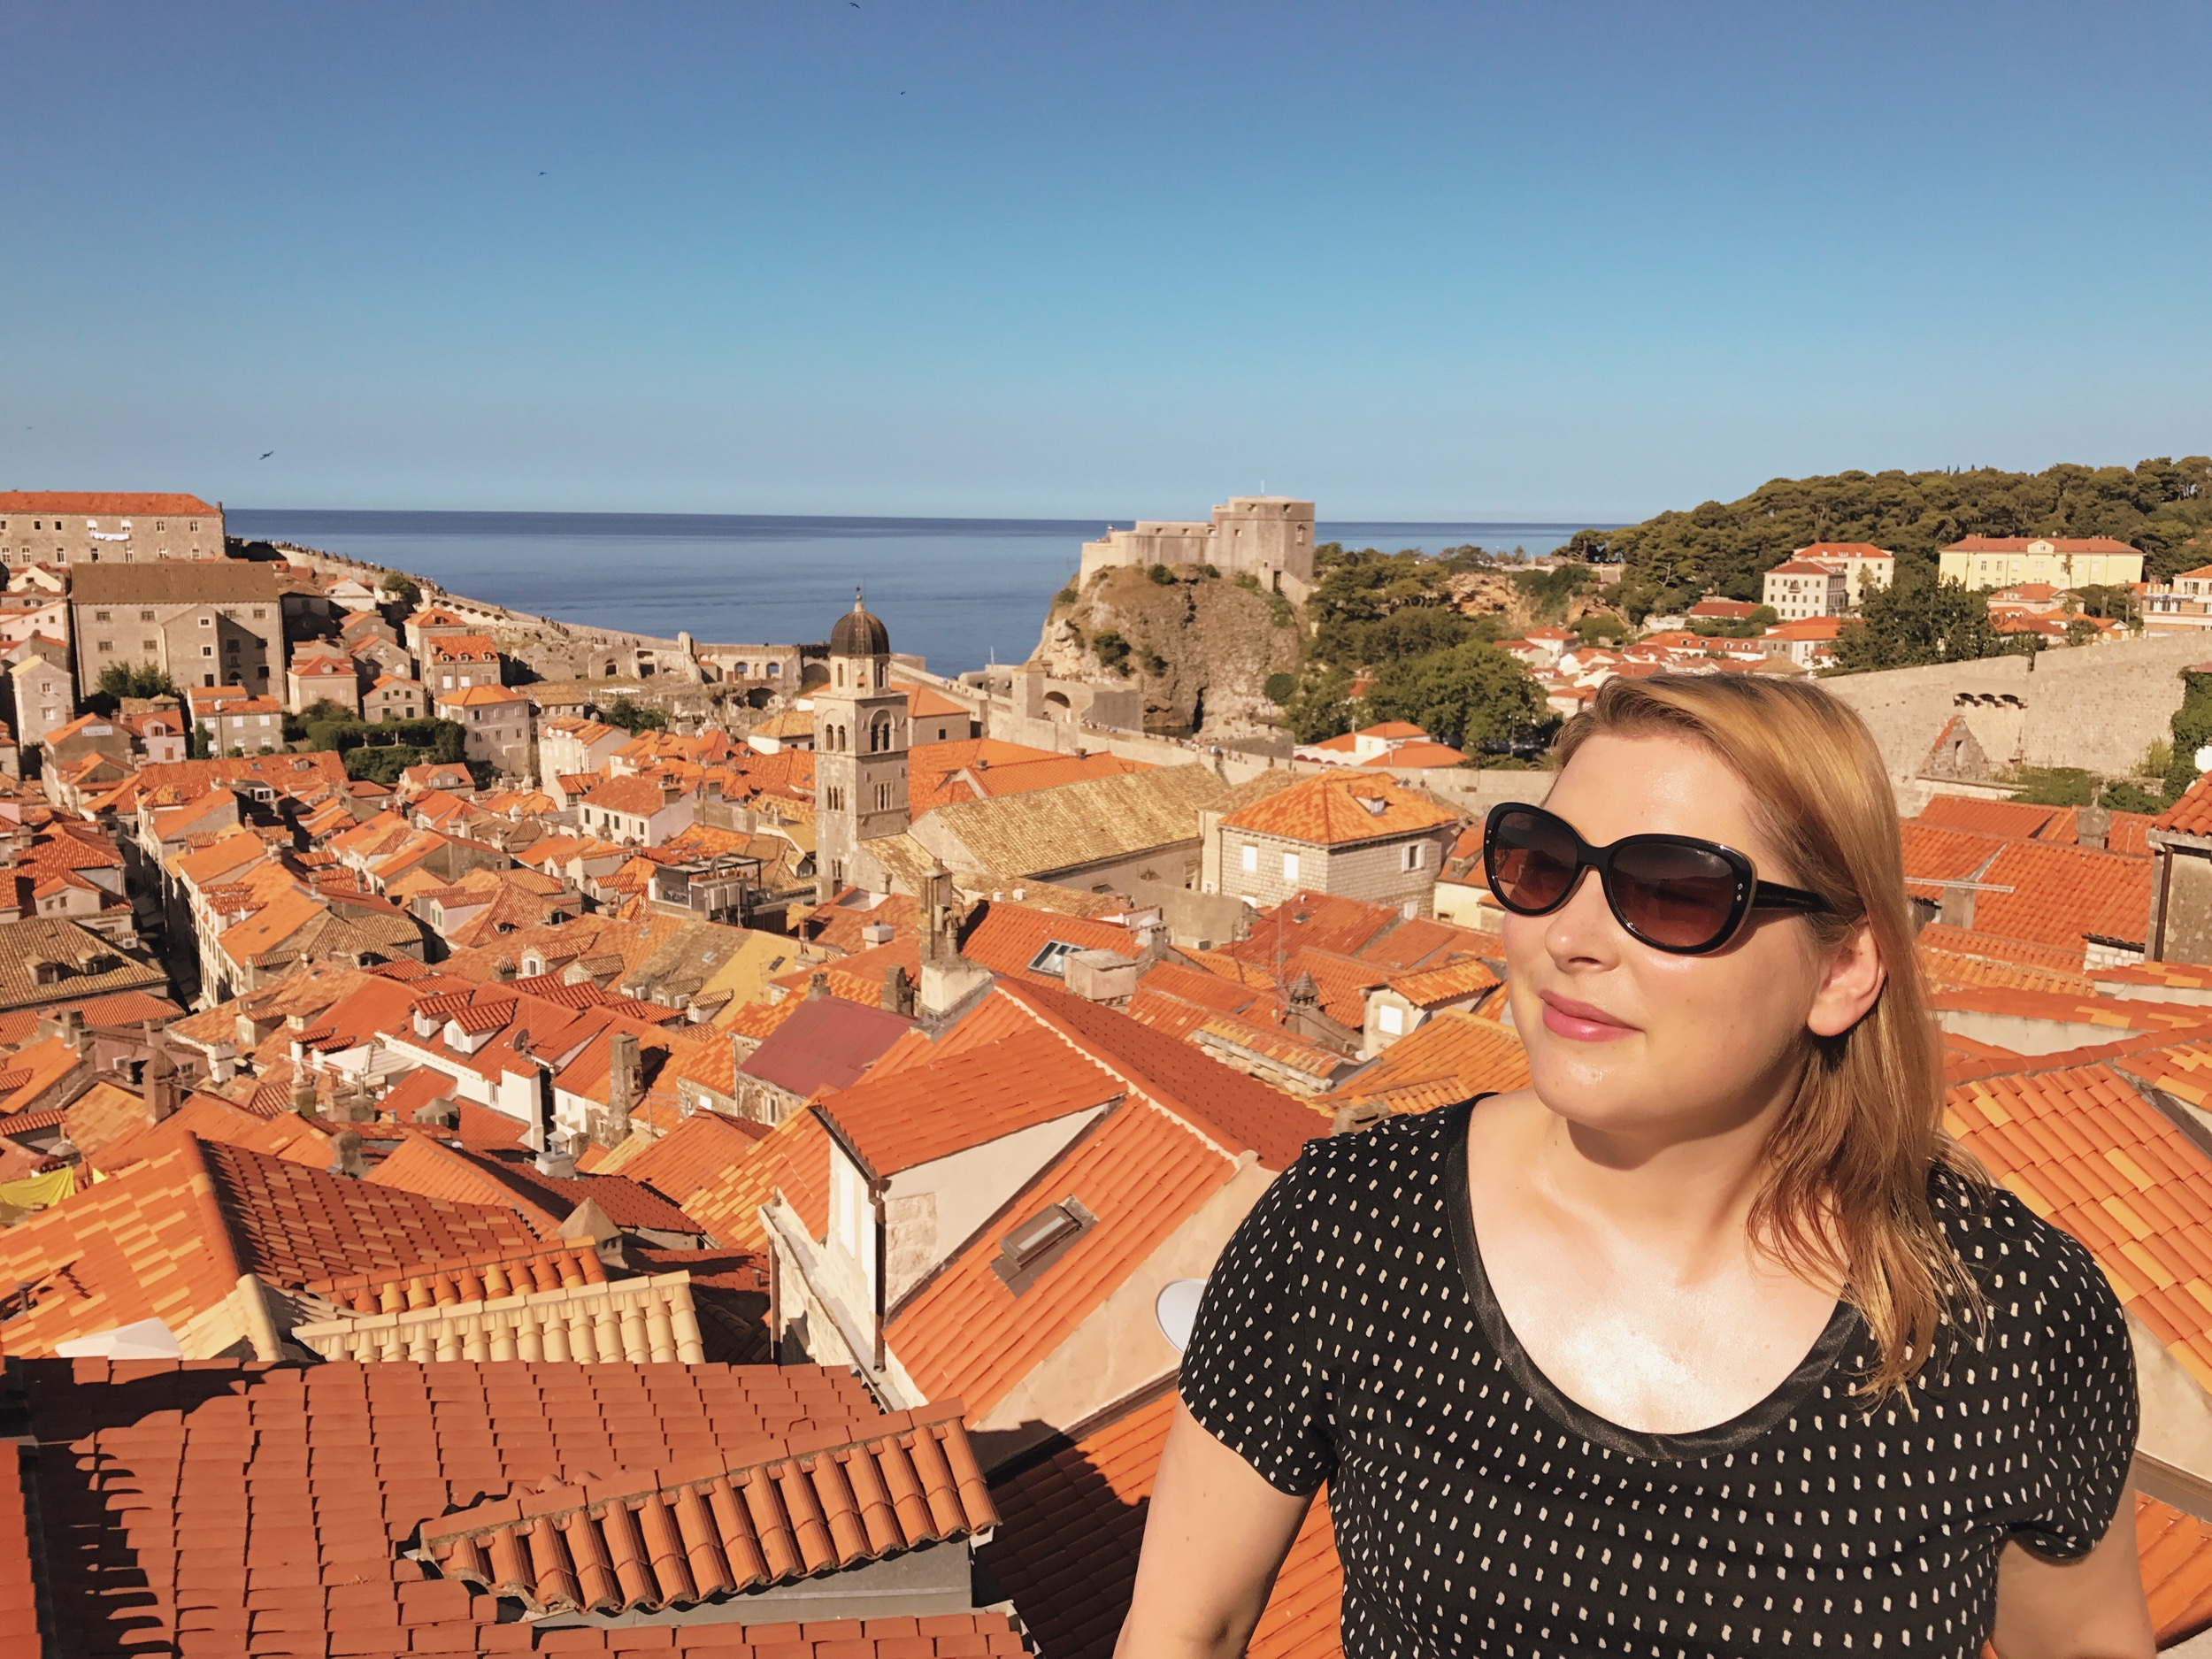 I use this photo for everything. My friend snapped it the last time we were in Dubrovnik during sunnier times (literal not metaphorical) :)